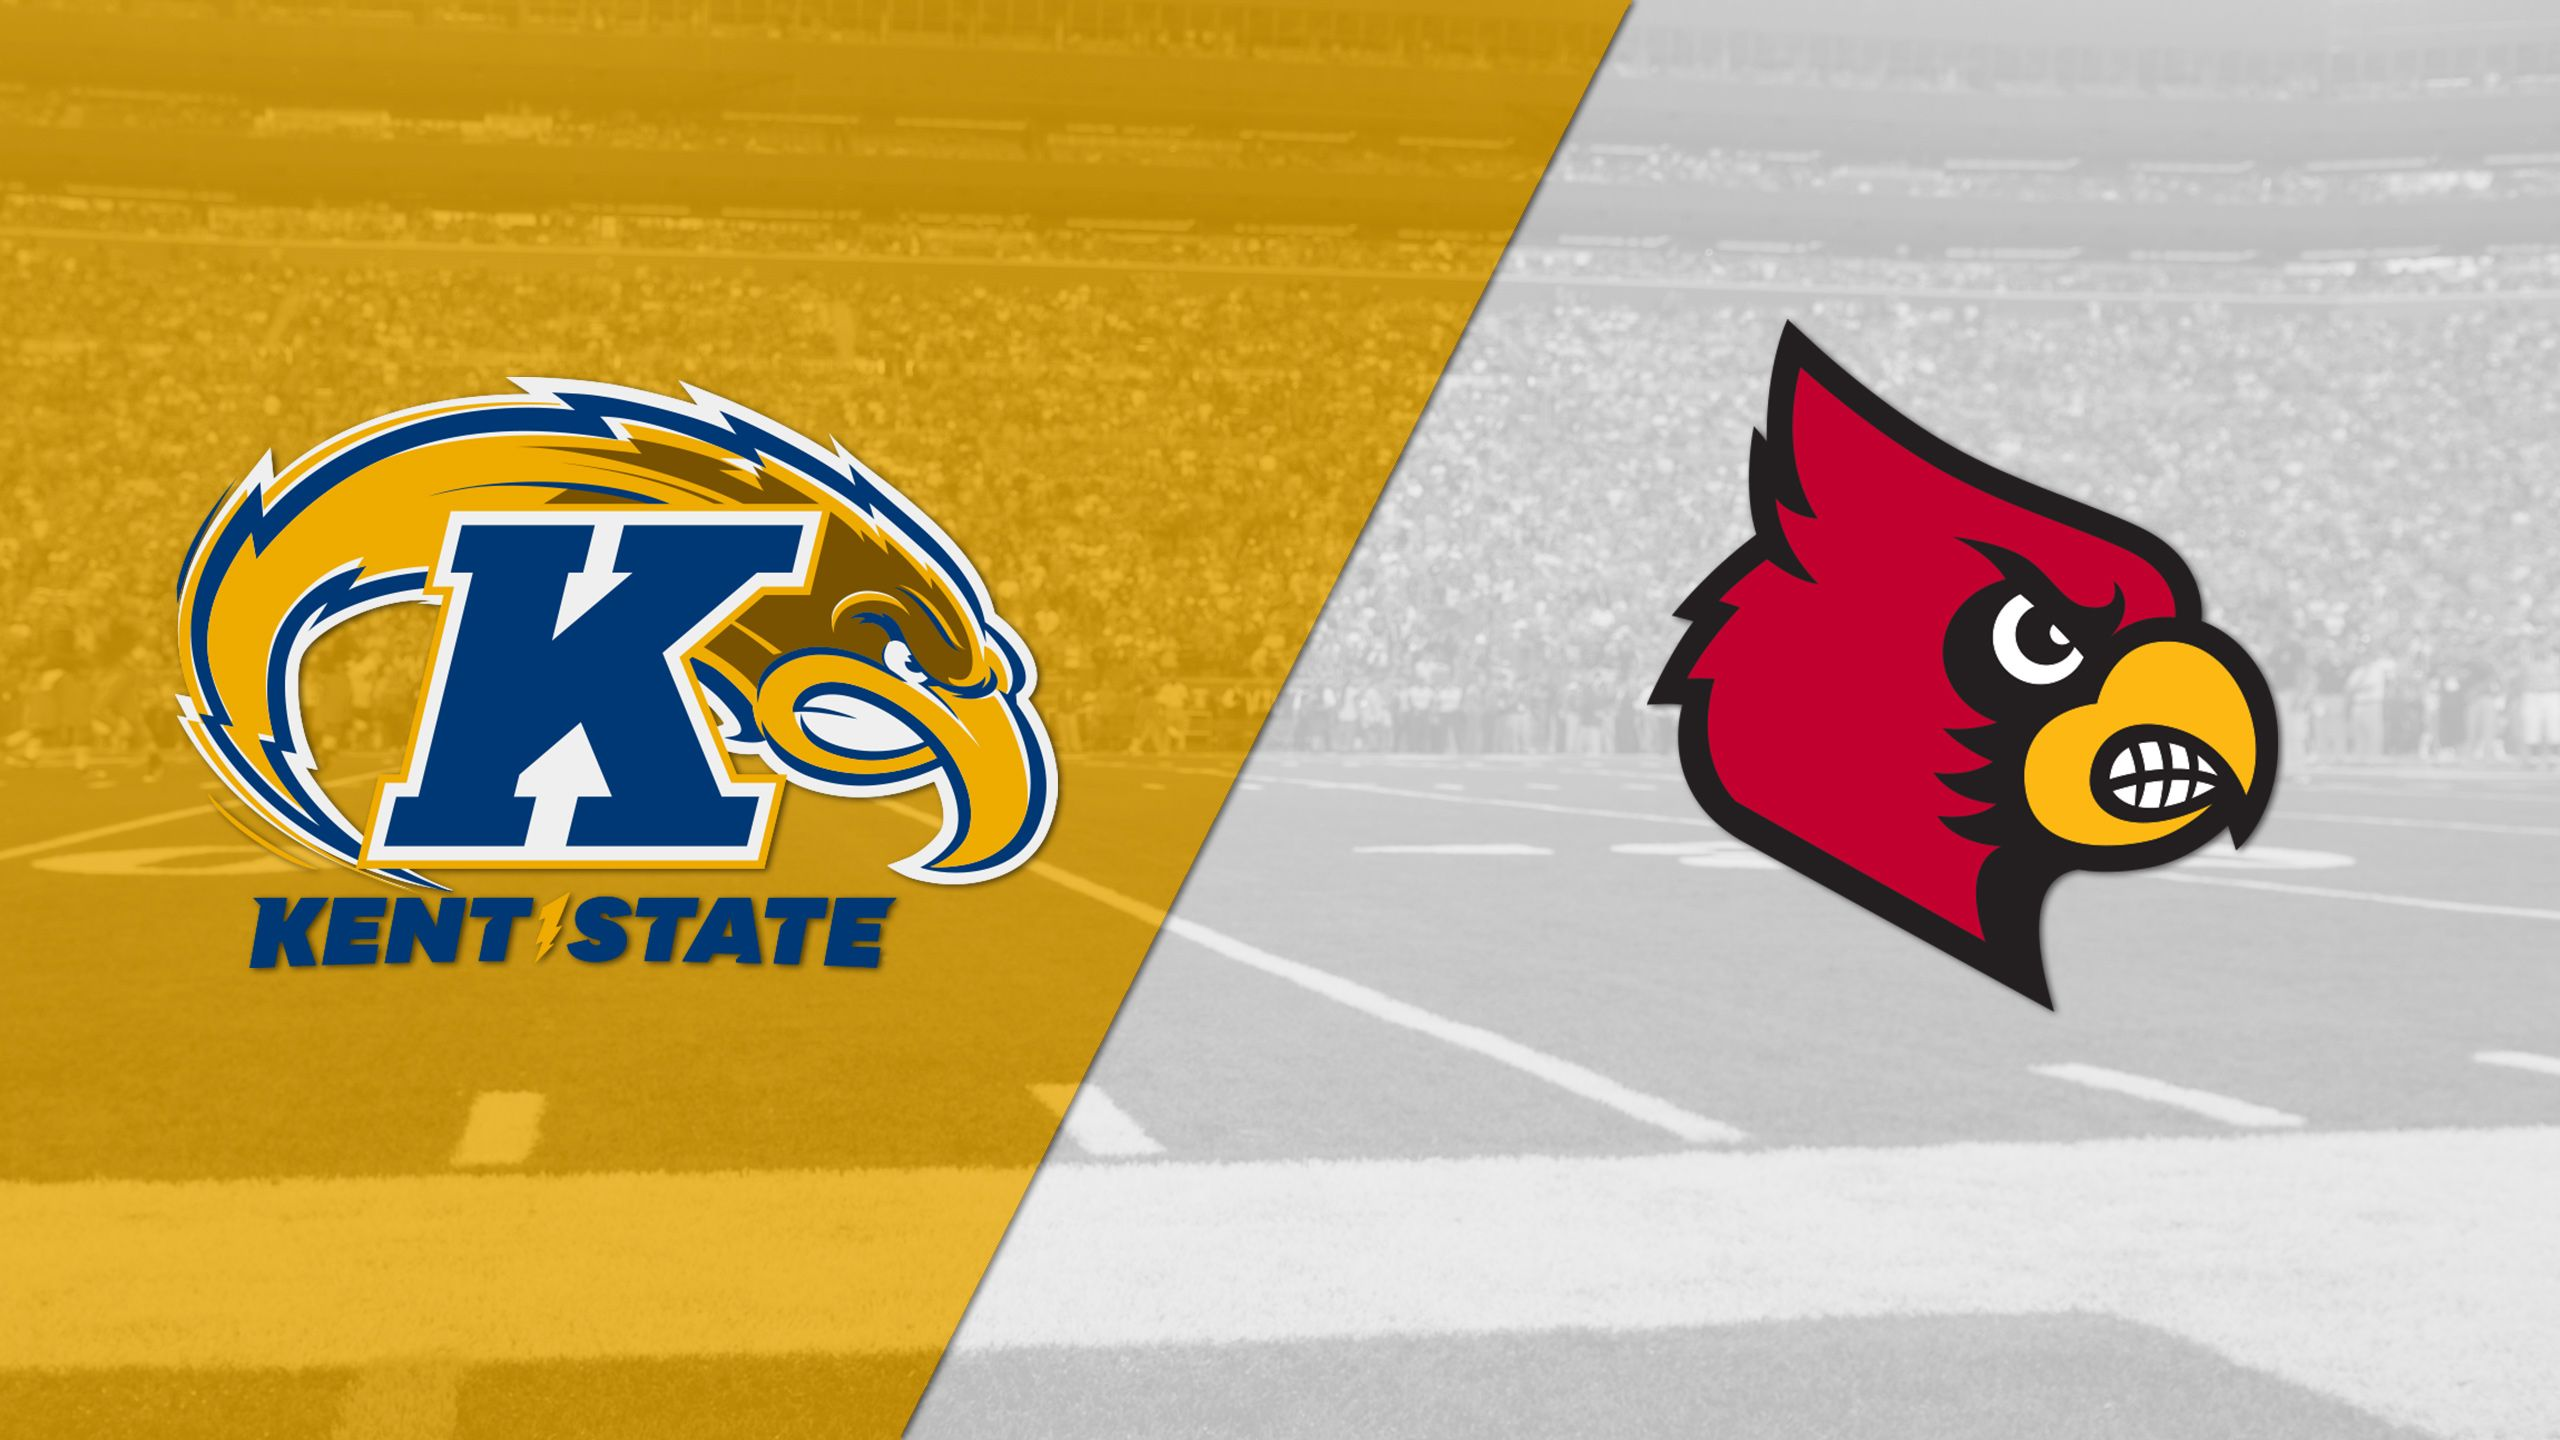 Kent State vs. #19 Louisville (Football)